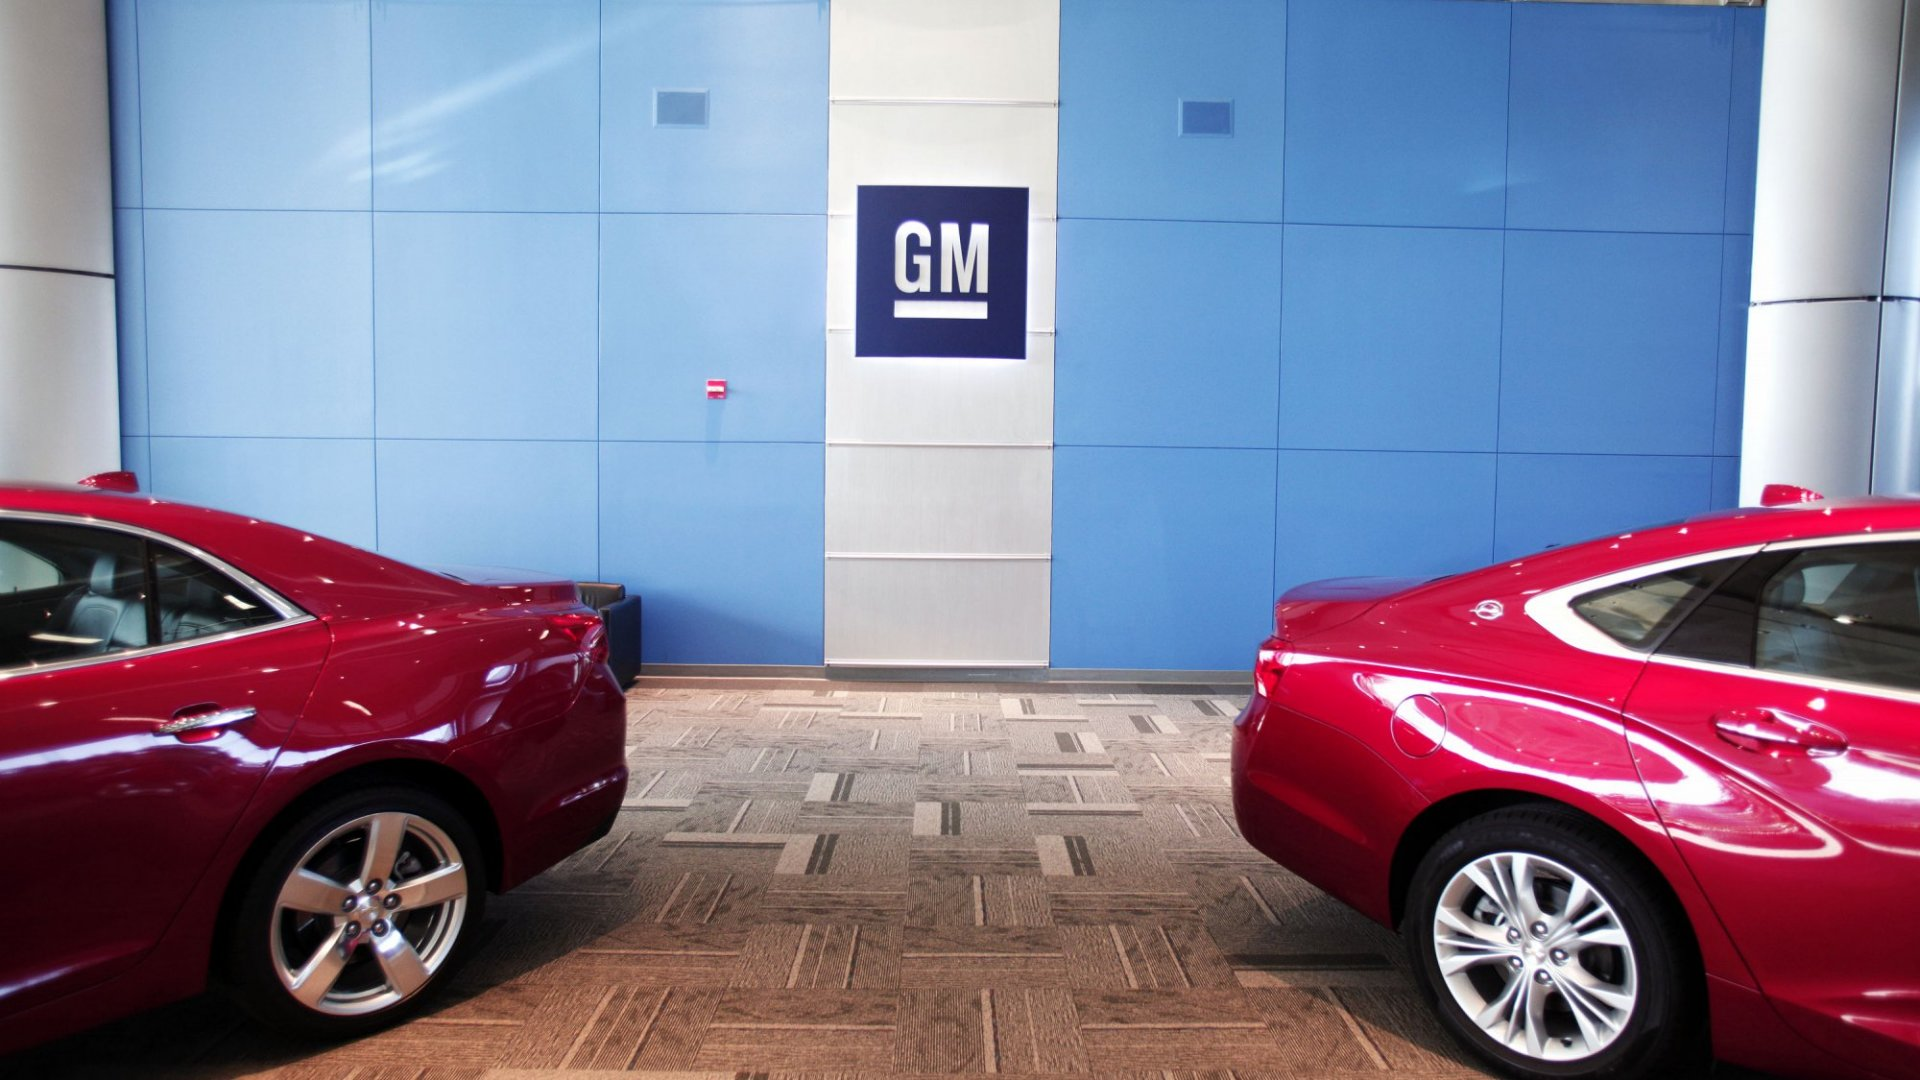 General Motors Prepares to Launch Car-Sharing Services Under New Name: Maven